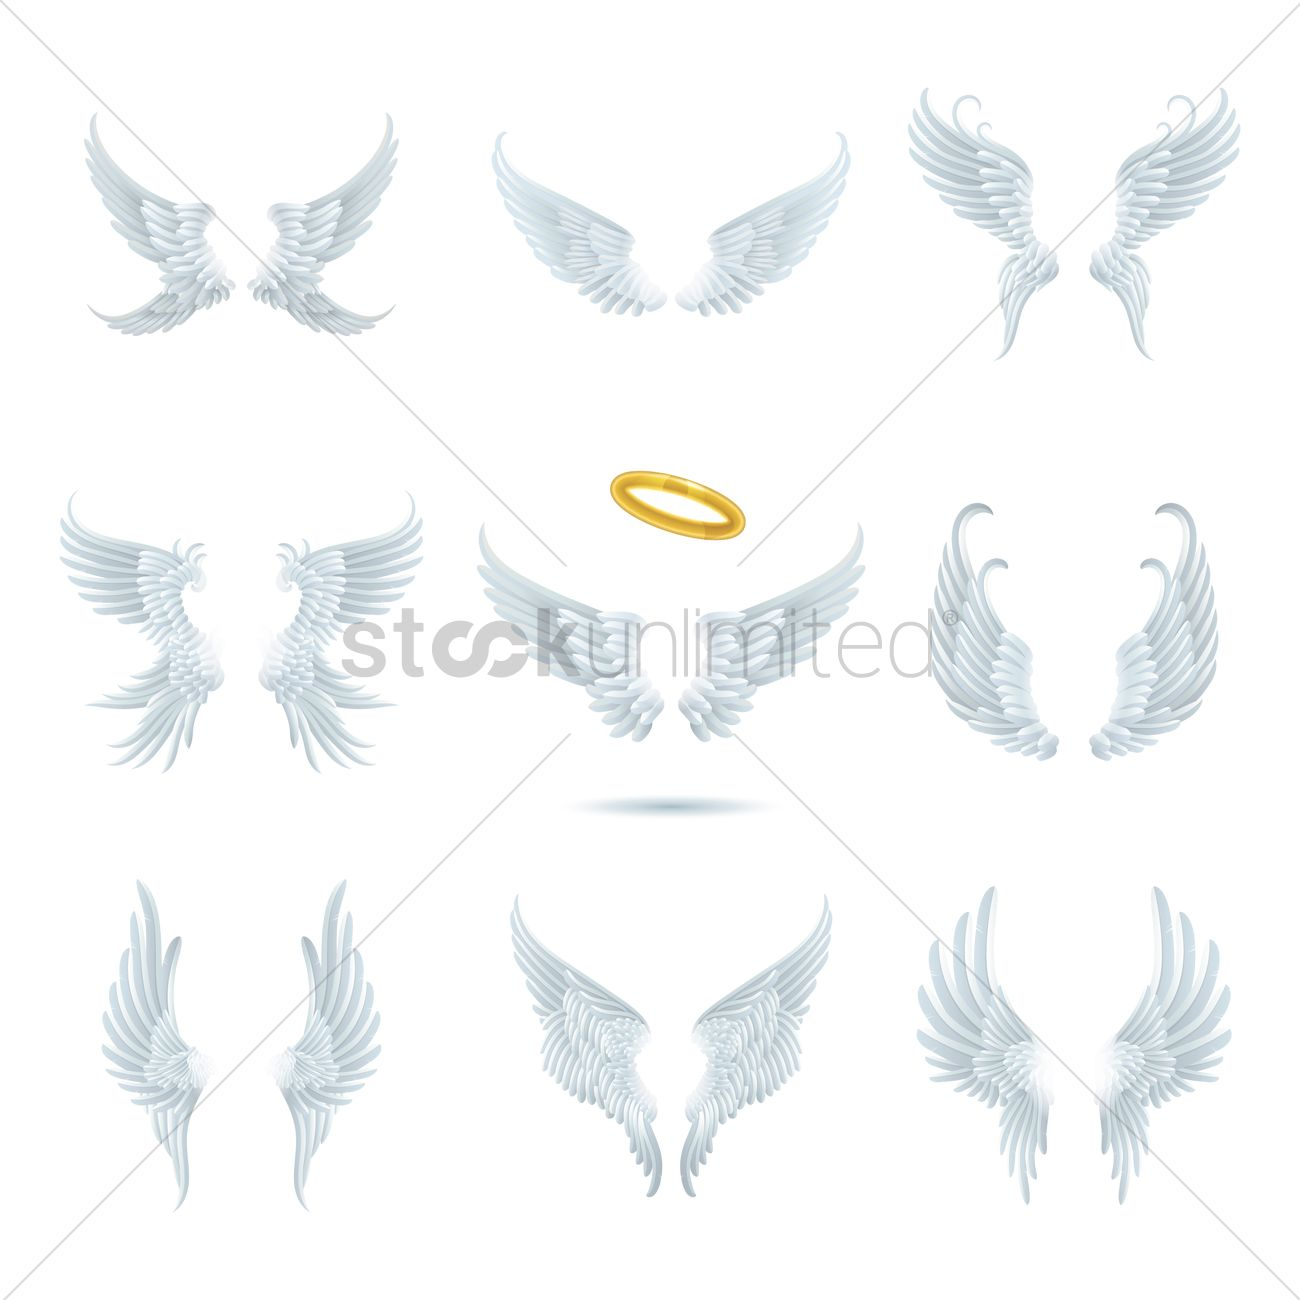 collection of angel wing designs vector image 1878468 stockunlimited